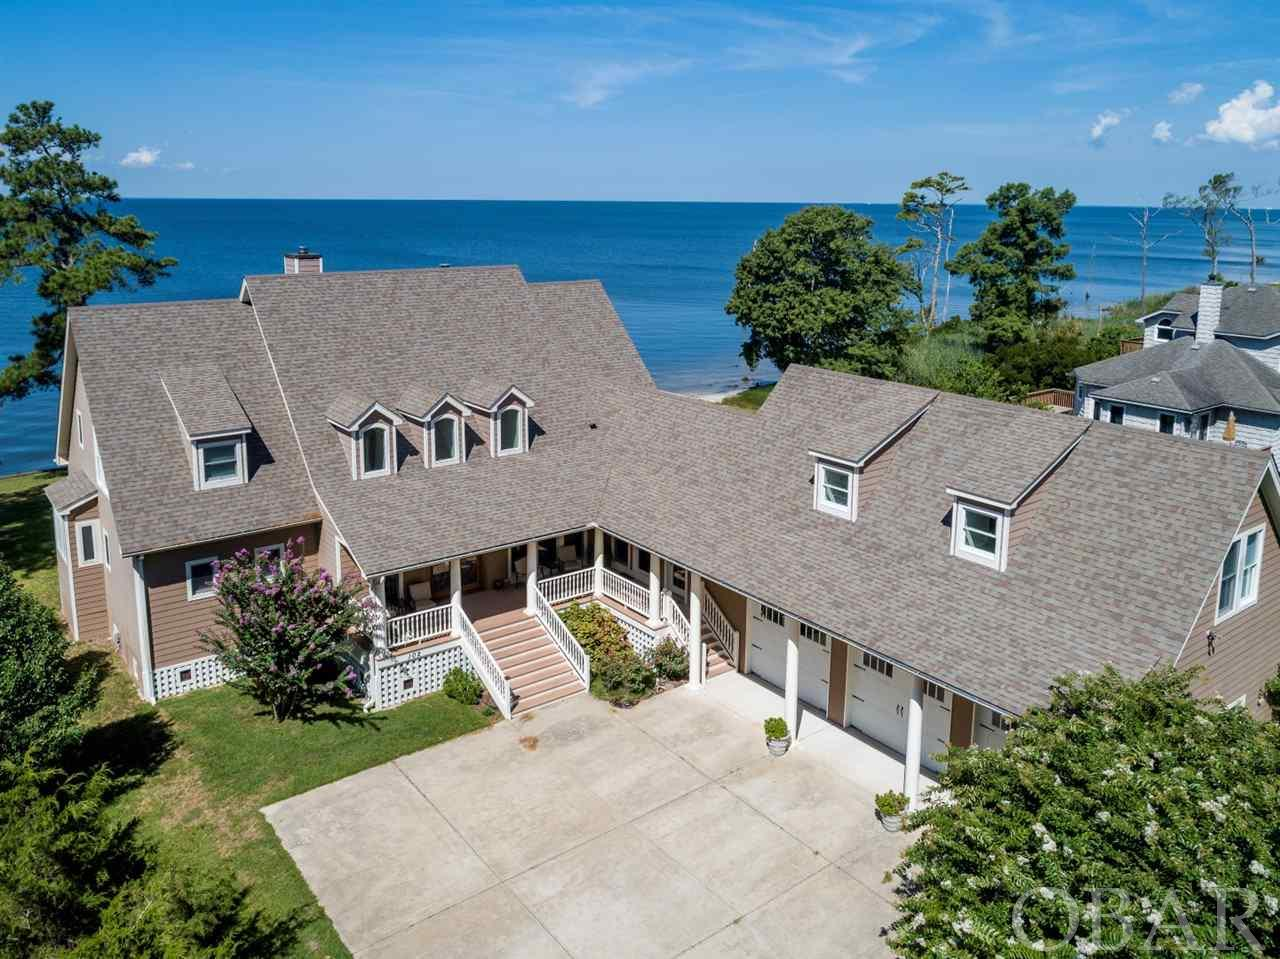 102 Waterside Drive,Harbinger,NC 27941,4 Bedrooms Bedrooms,3 BathroomsBathrooms,Residential,Waterside Drive,99615